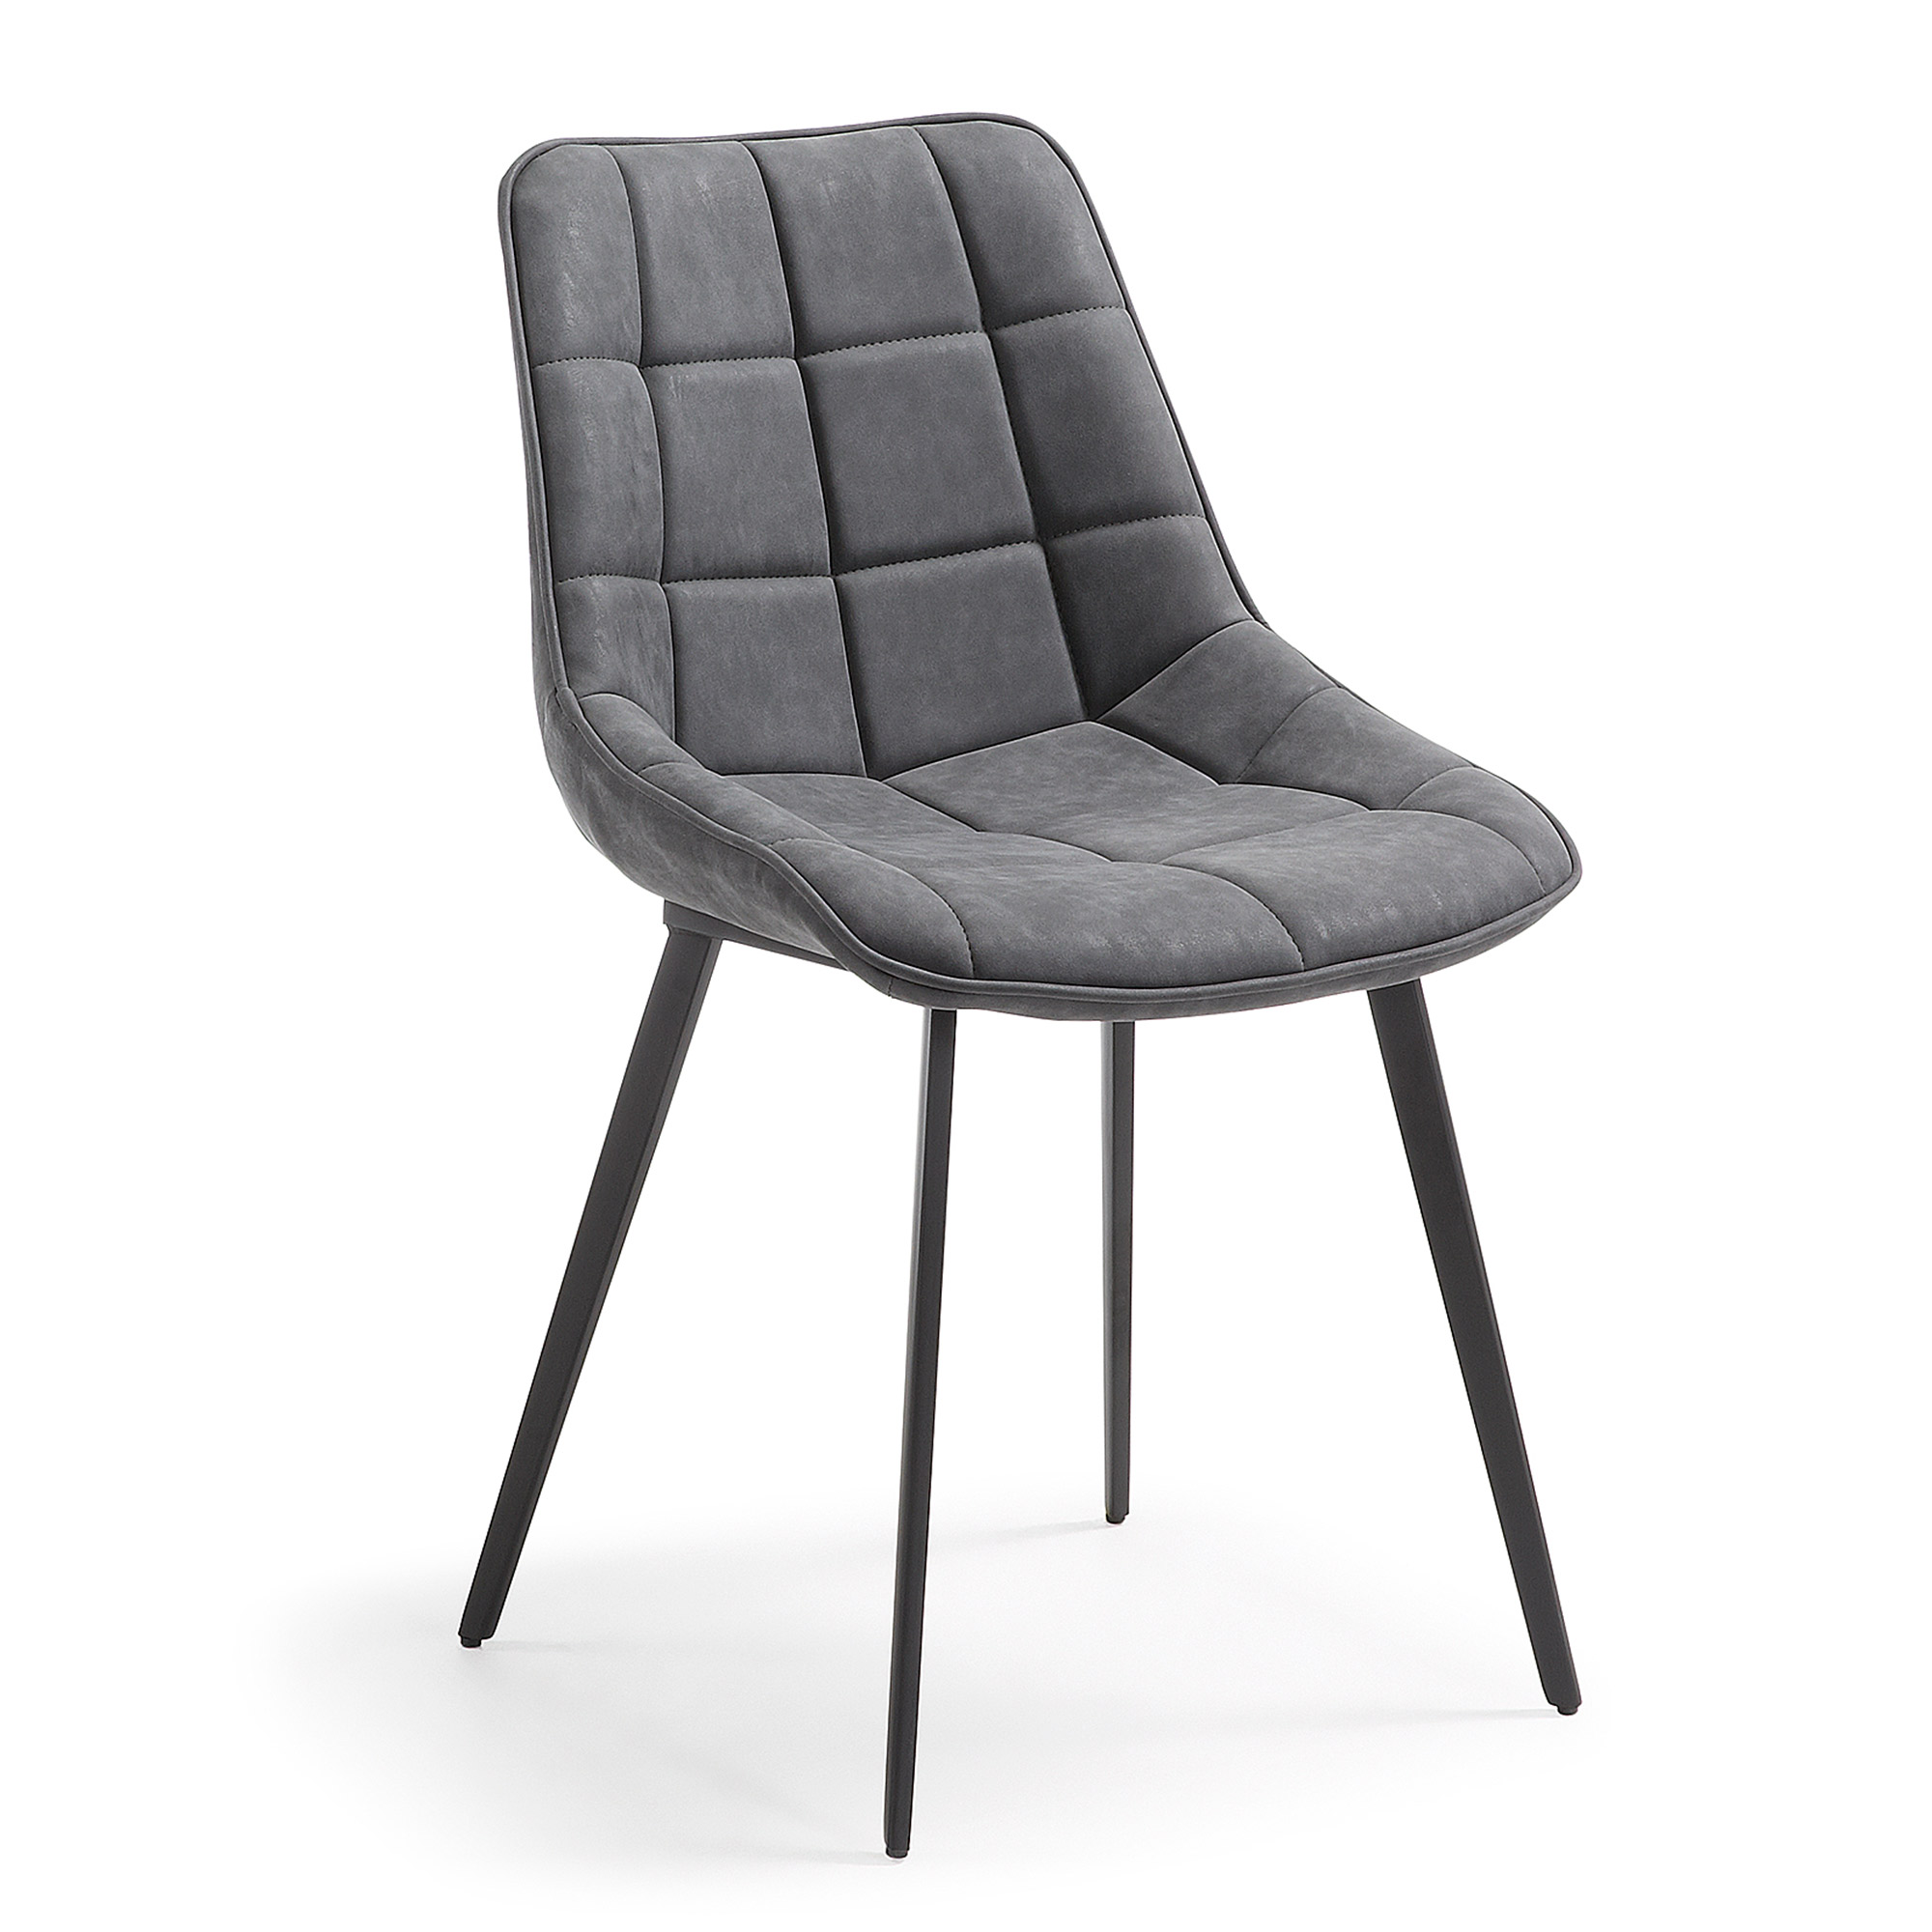 Adah Dining Chair